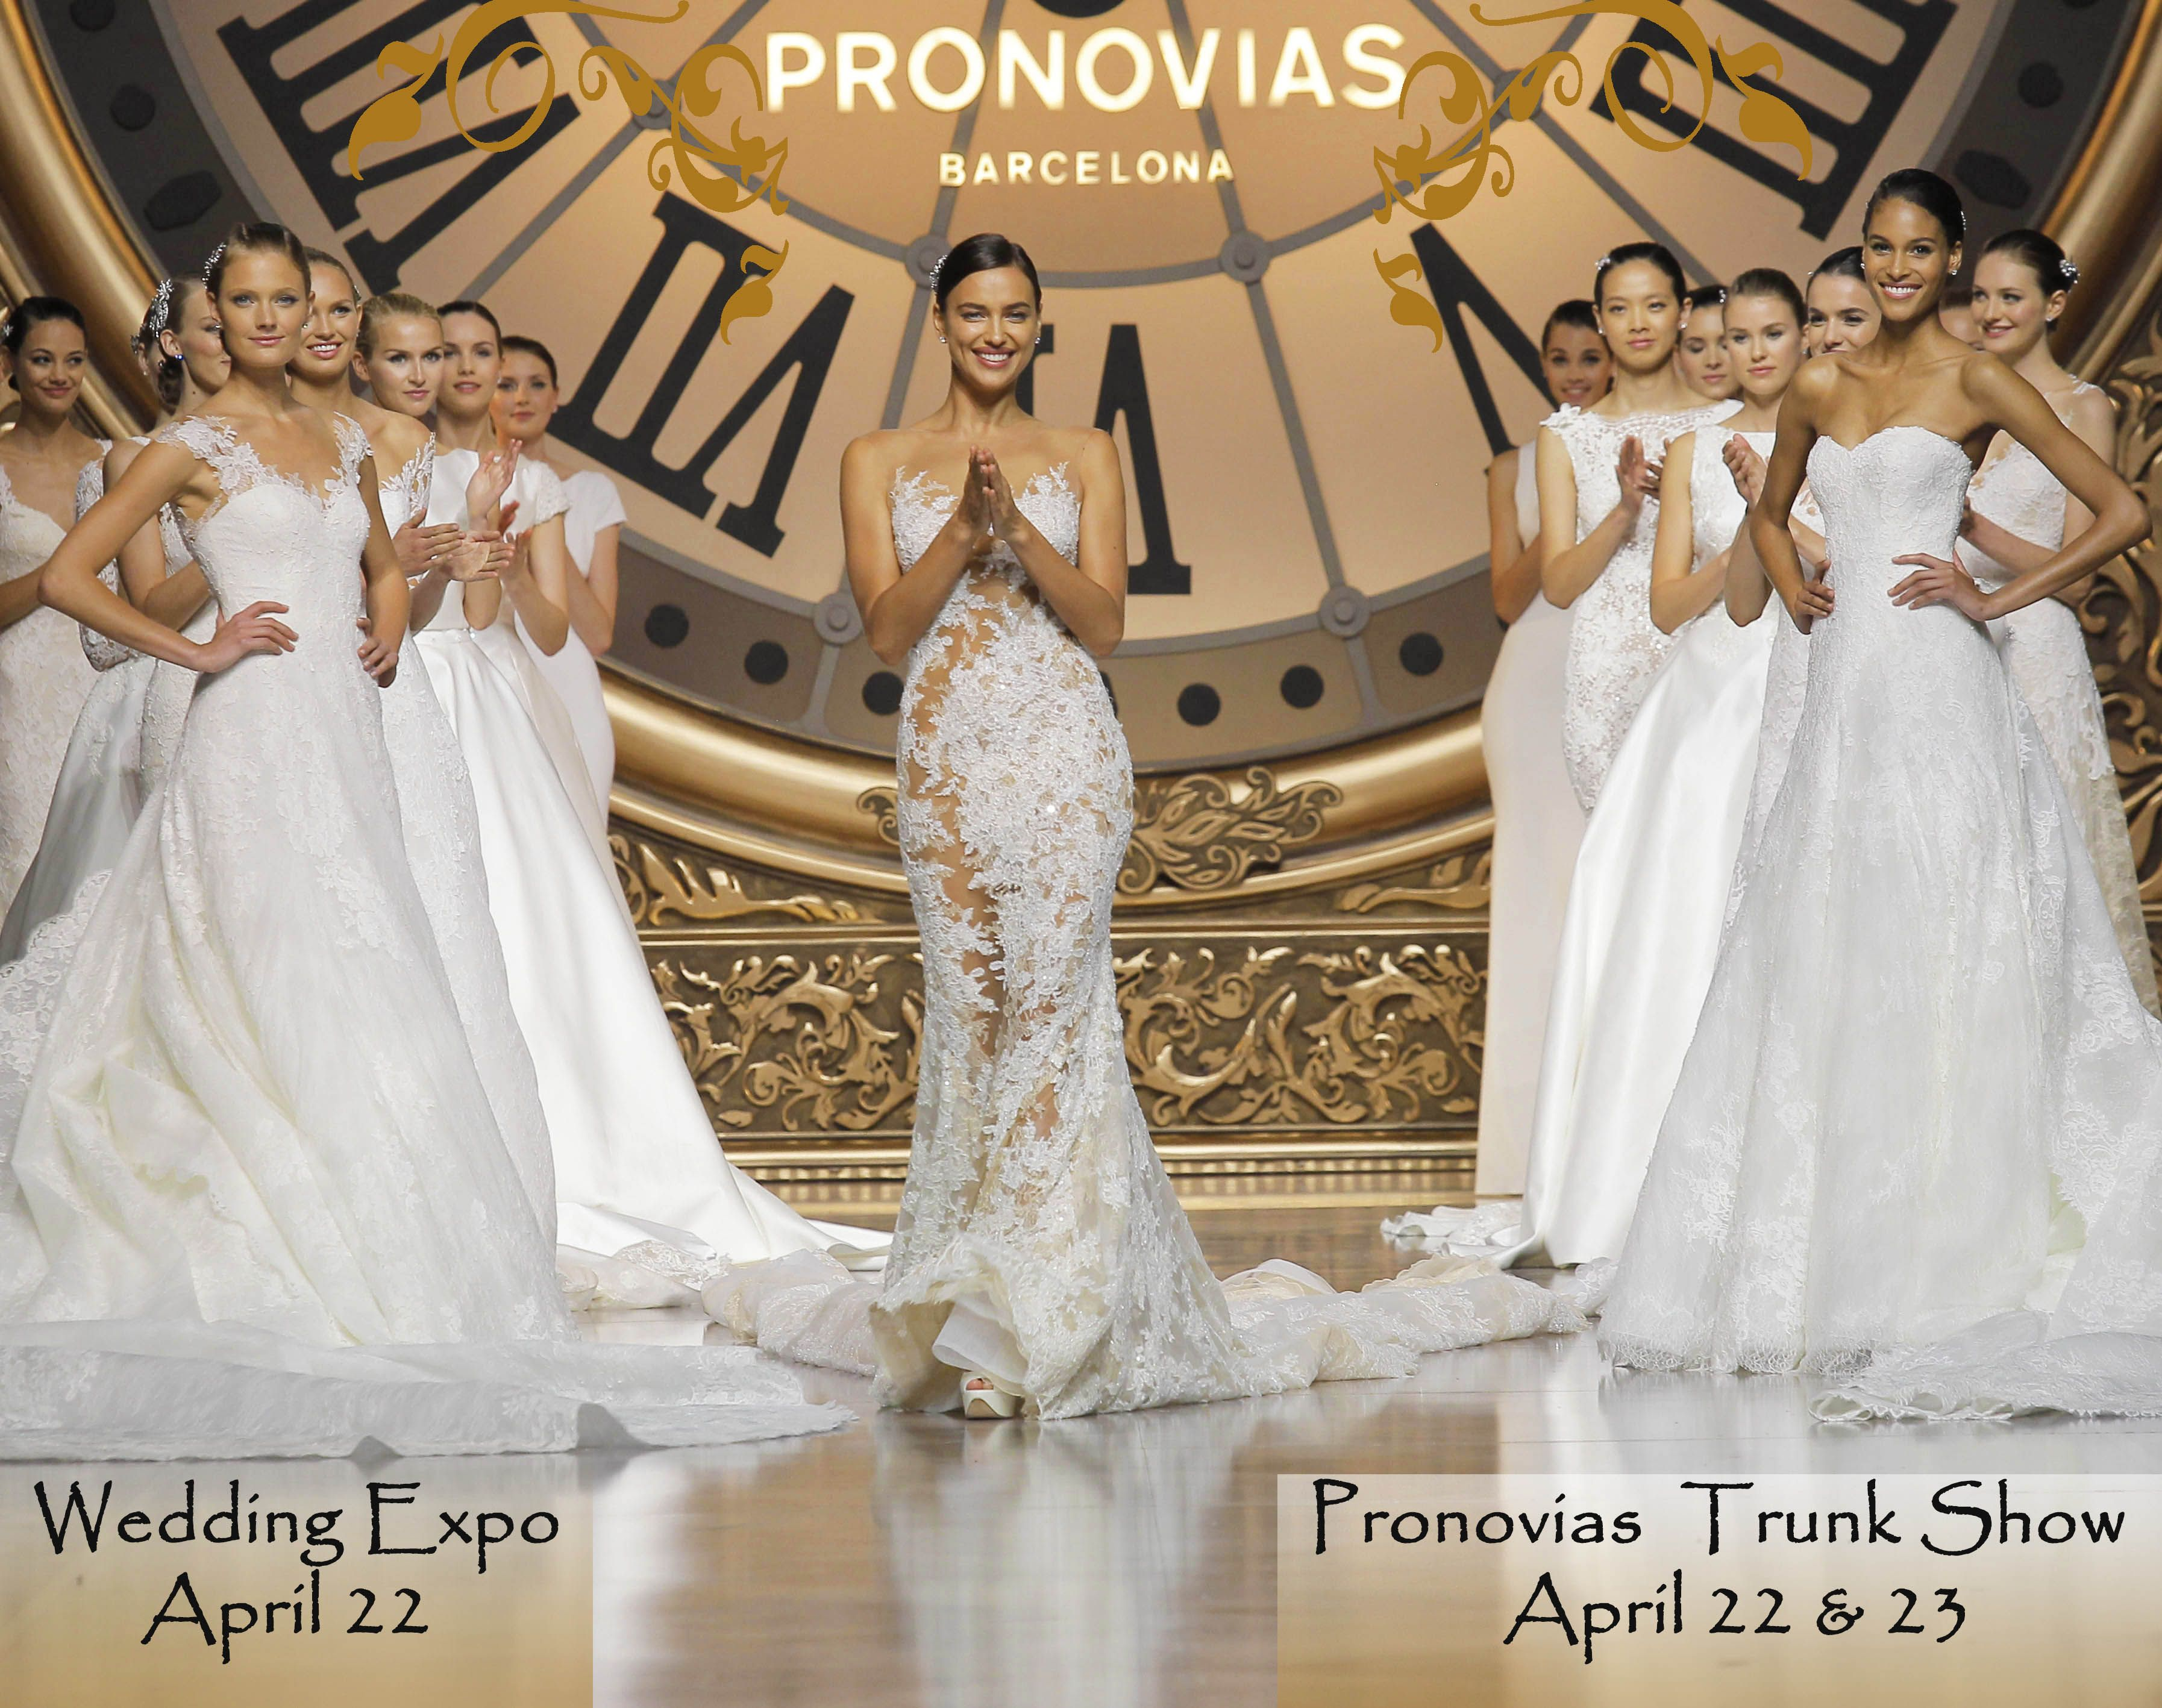 Join Us April 22 23 For Our Pronovias Trunk Show And Our Bridal